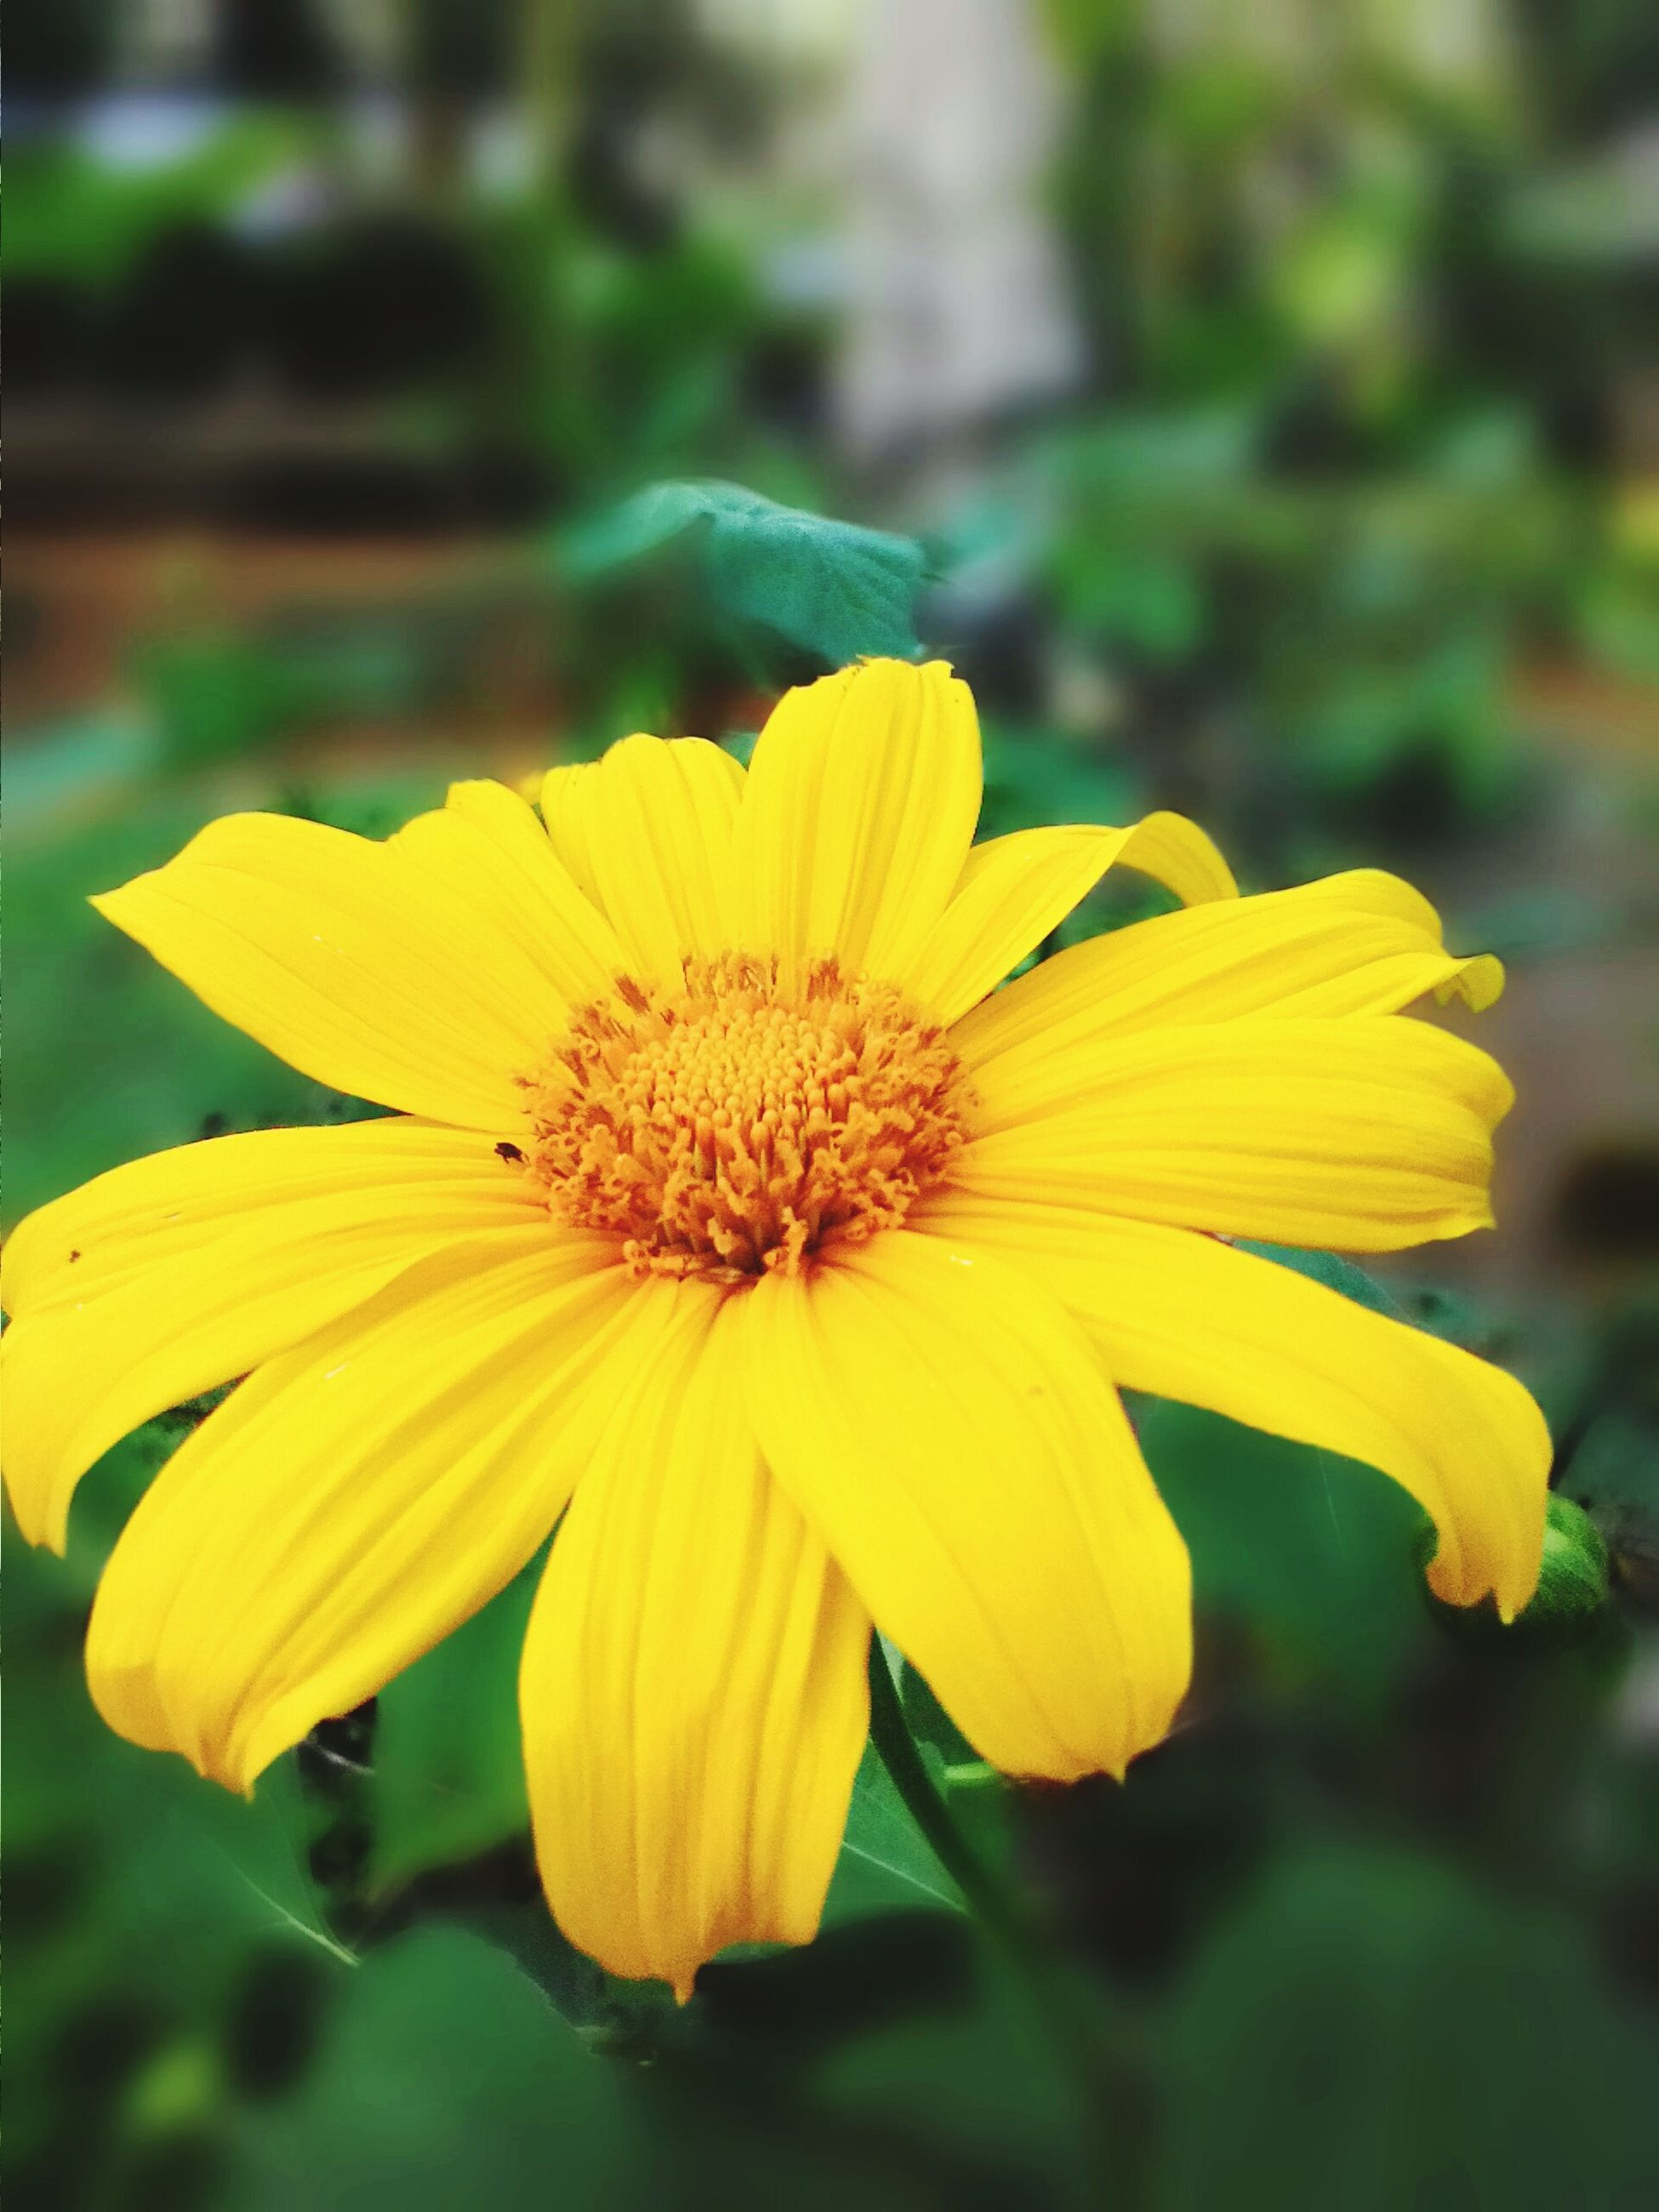 flower, petal, yellow, freshness, flower head, fragility, focus on foreground, close-up, beauty in nature, growth, pollen, blooming, single flower, nature, plant, in bloom, park - man made space, day, outdoors, blossom